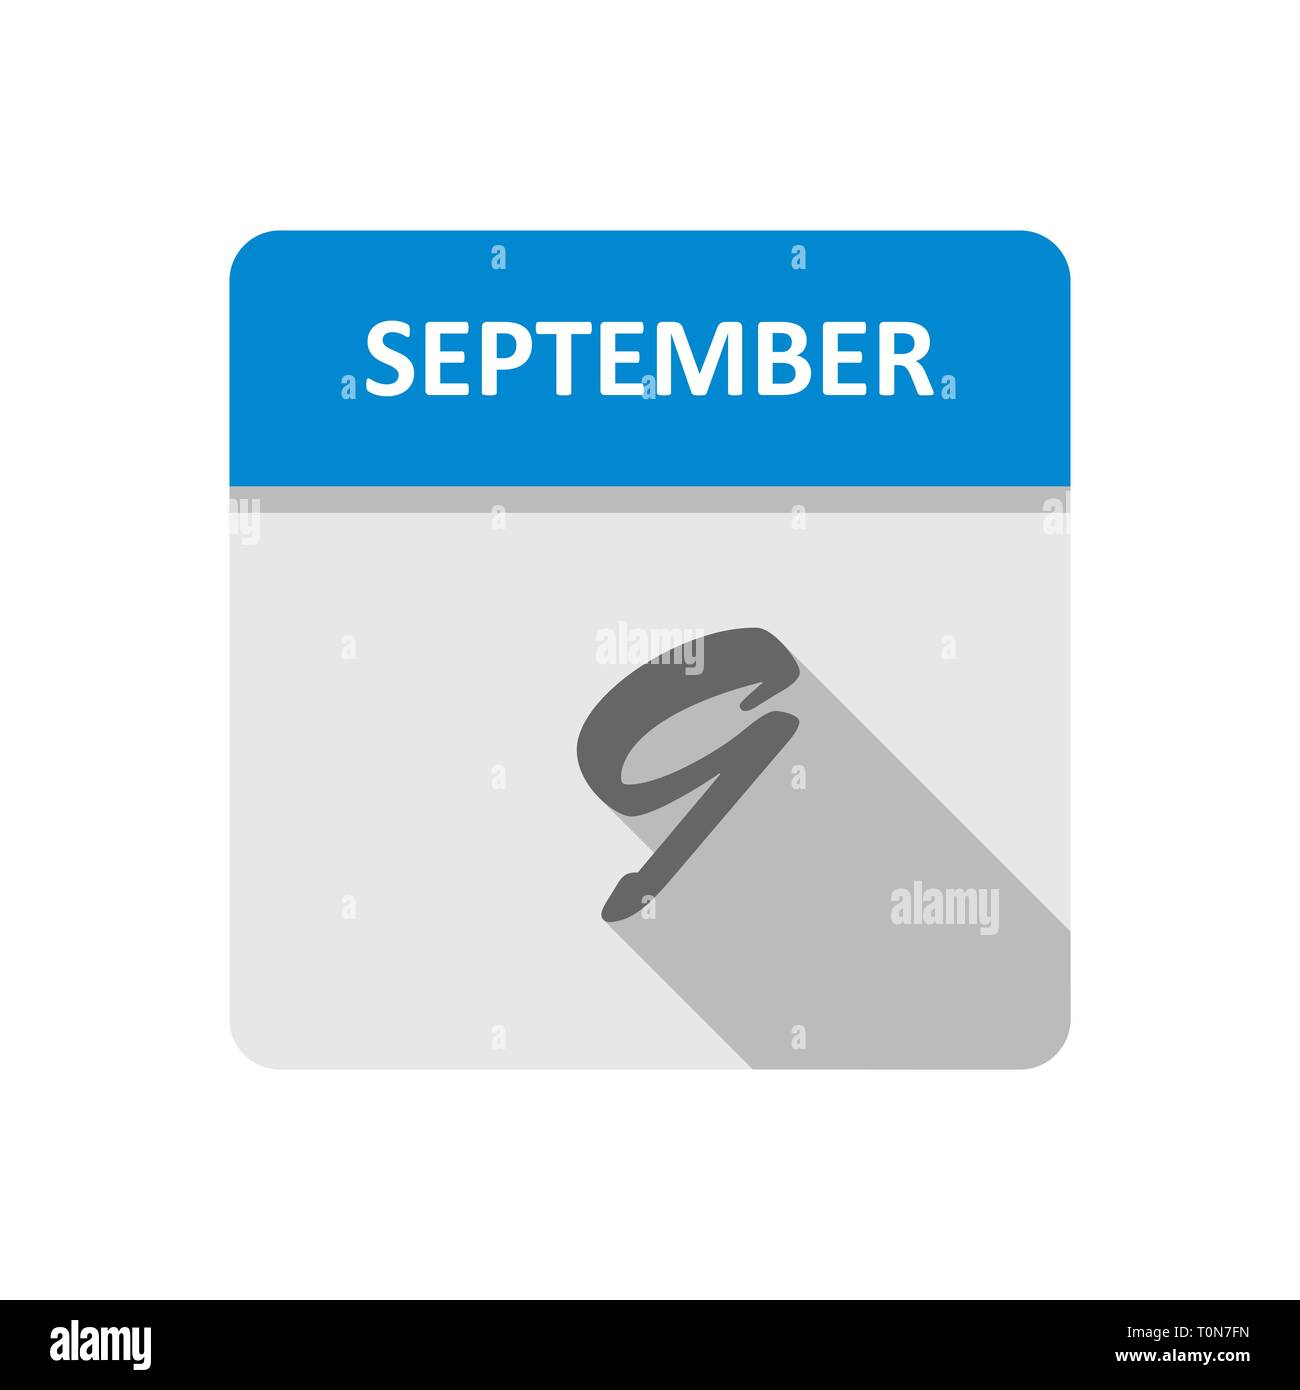 September 9th Date on a Single Day Calendar - Stock Image